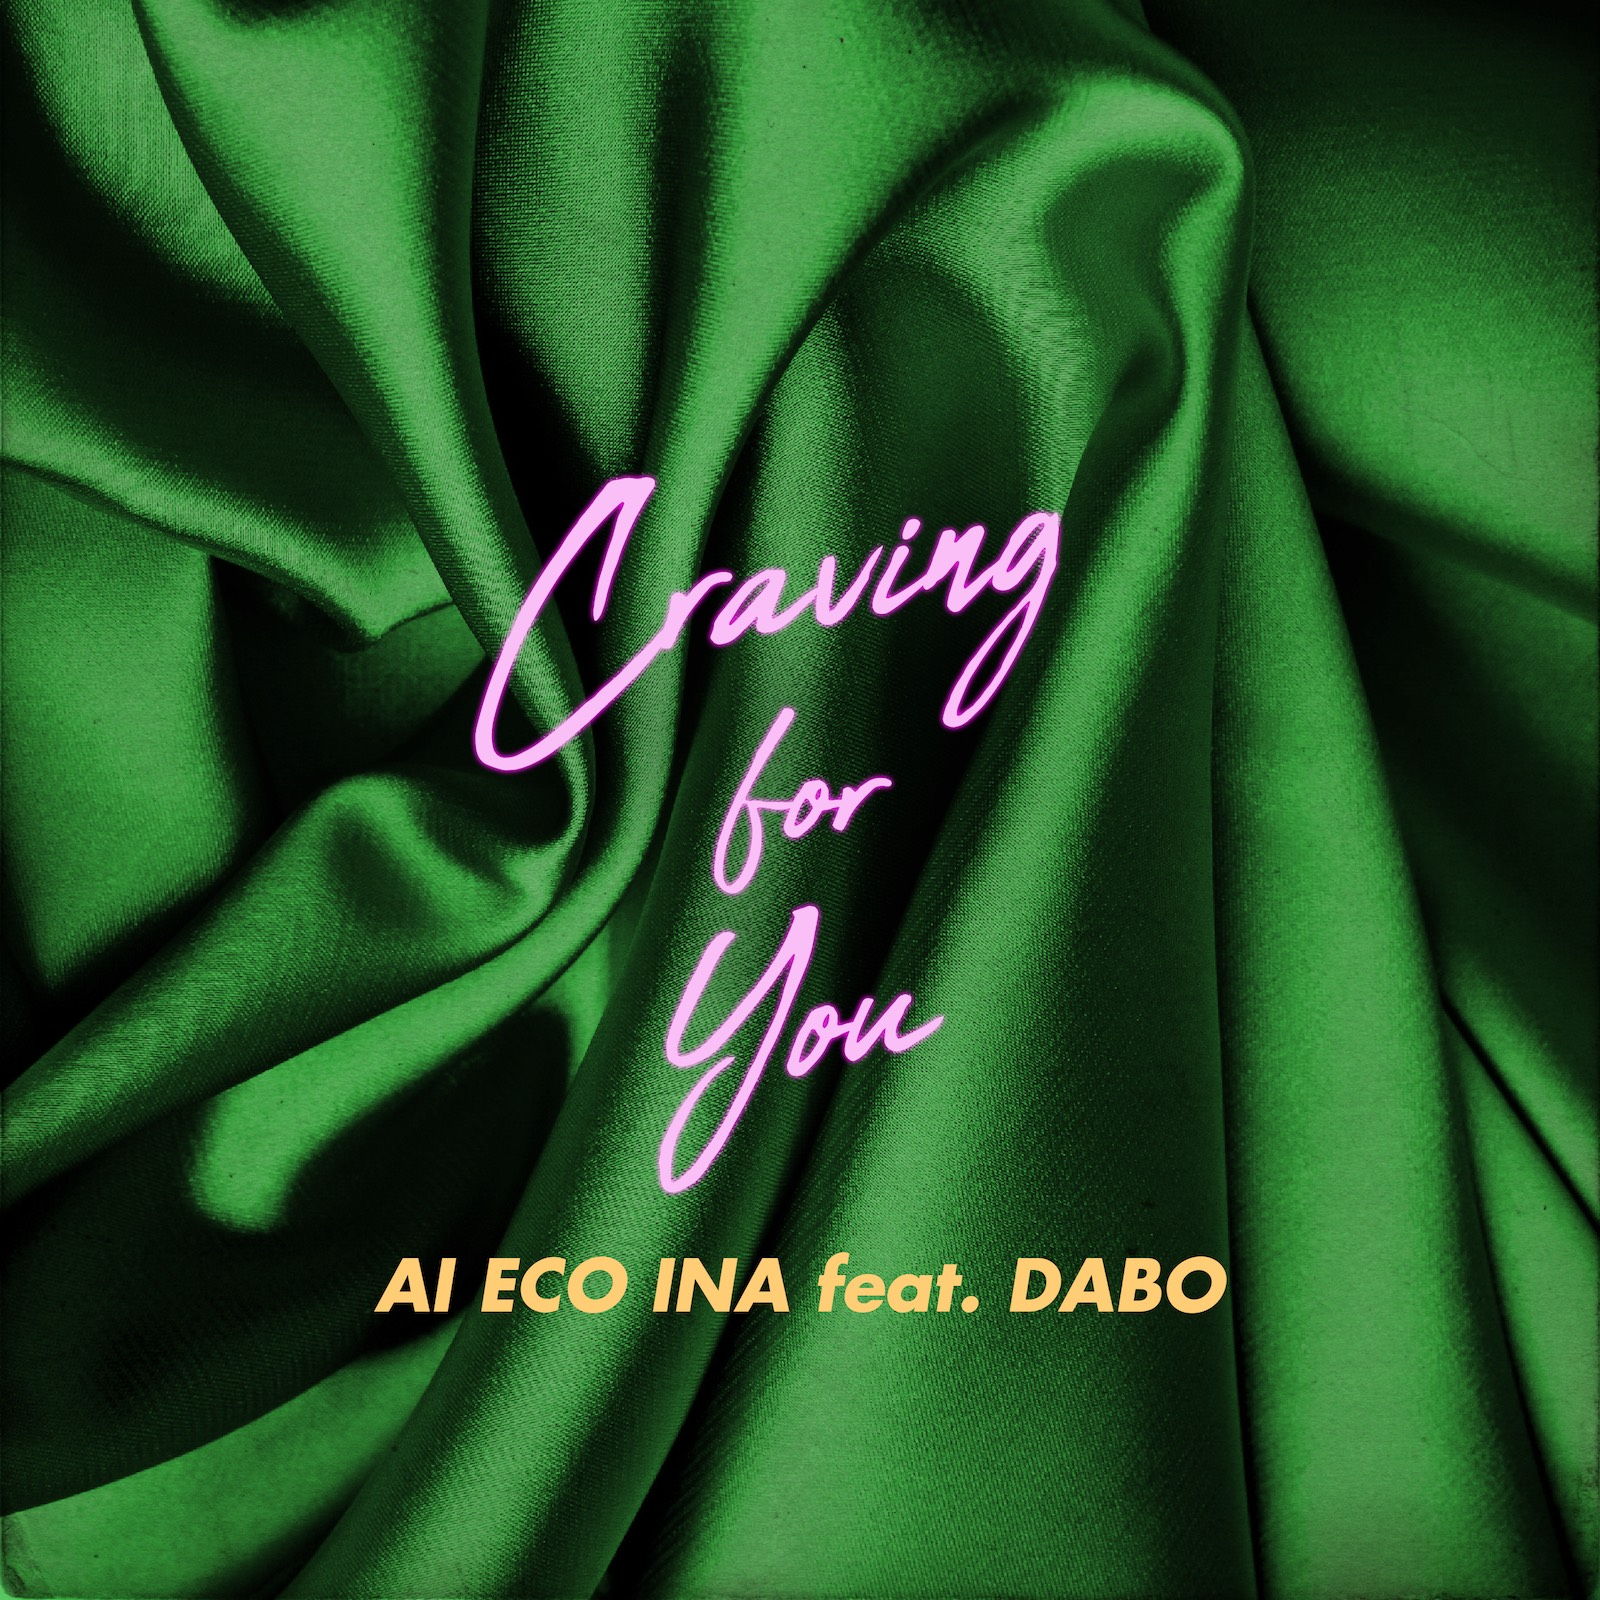 AI ECO INA / Craving For You feat. DABO - Single / 2018.02